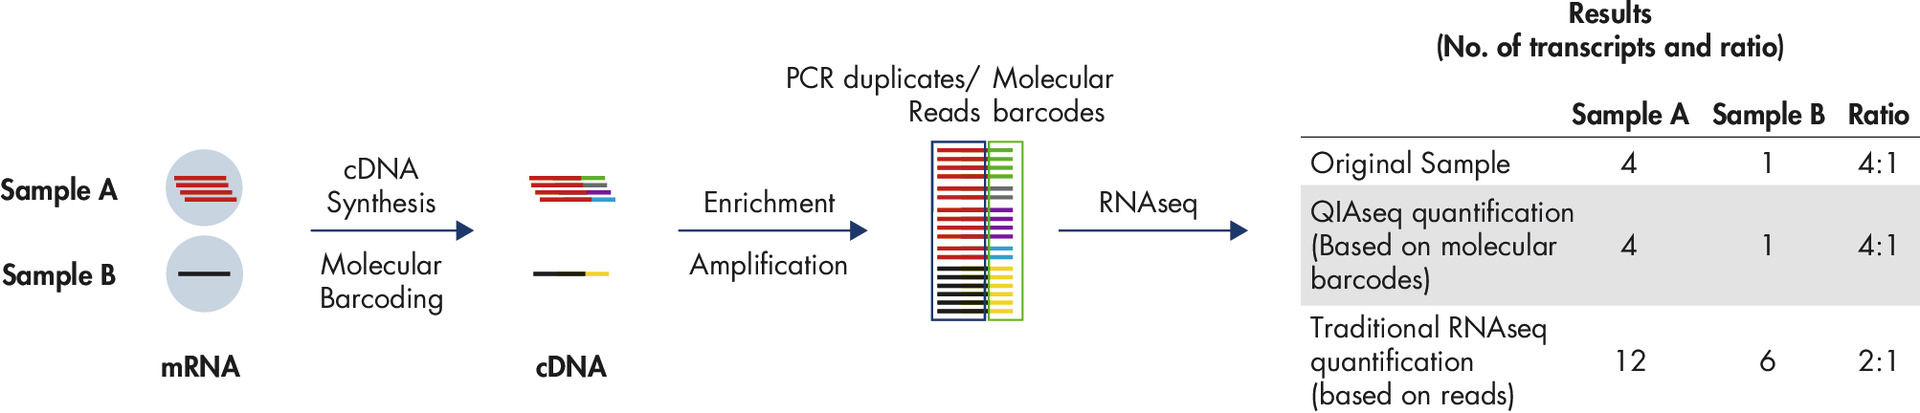 Digital sequencing (molecular barcodes) principle